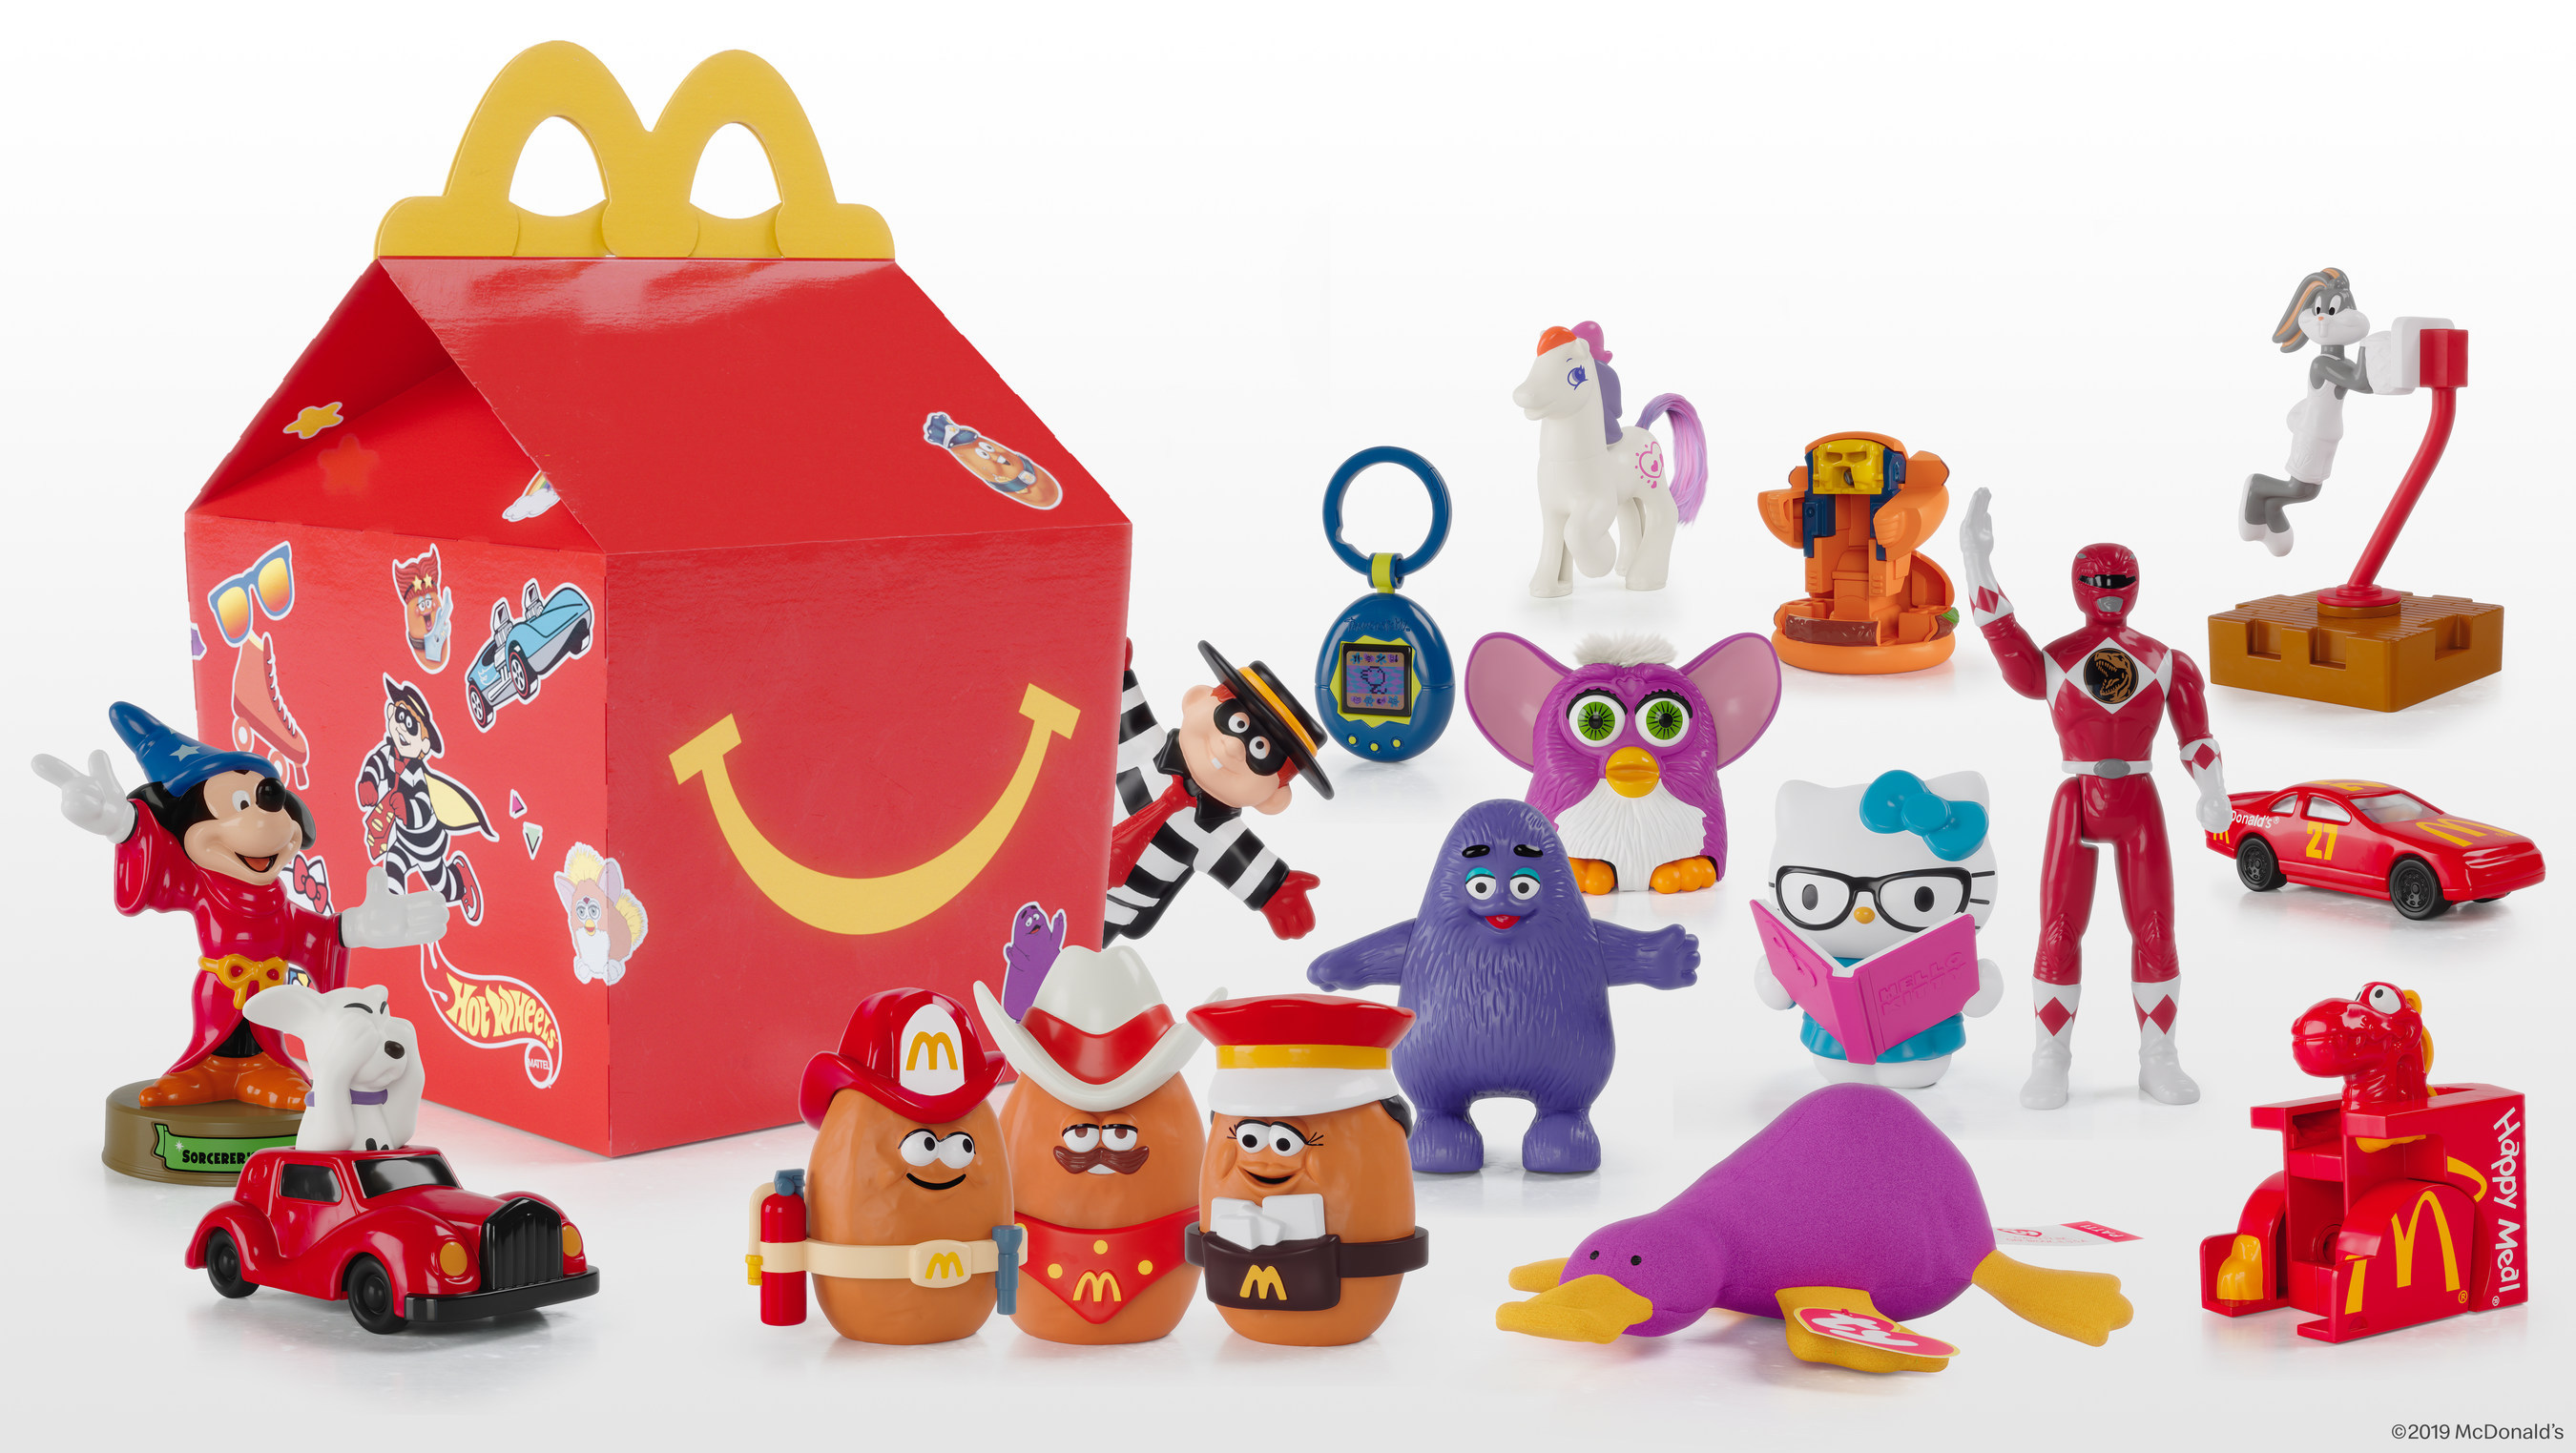 Mcdonalds 2021 Christmas Toy Line Most Popular Happy Meal Toys From The Past 40 Years Return To Mcdonalds Mickeyblog Com